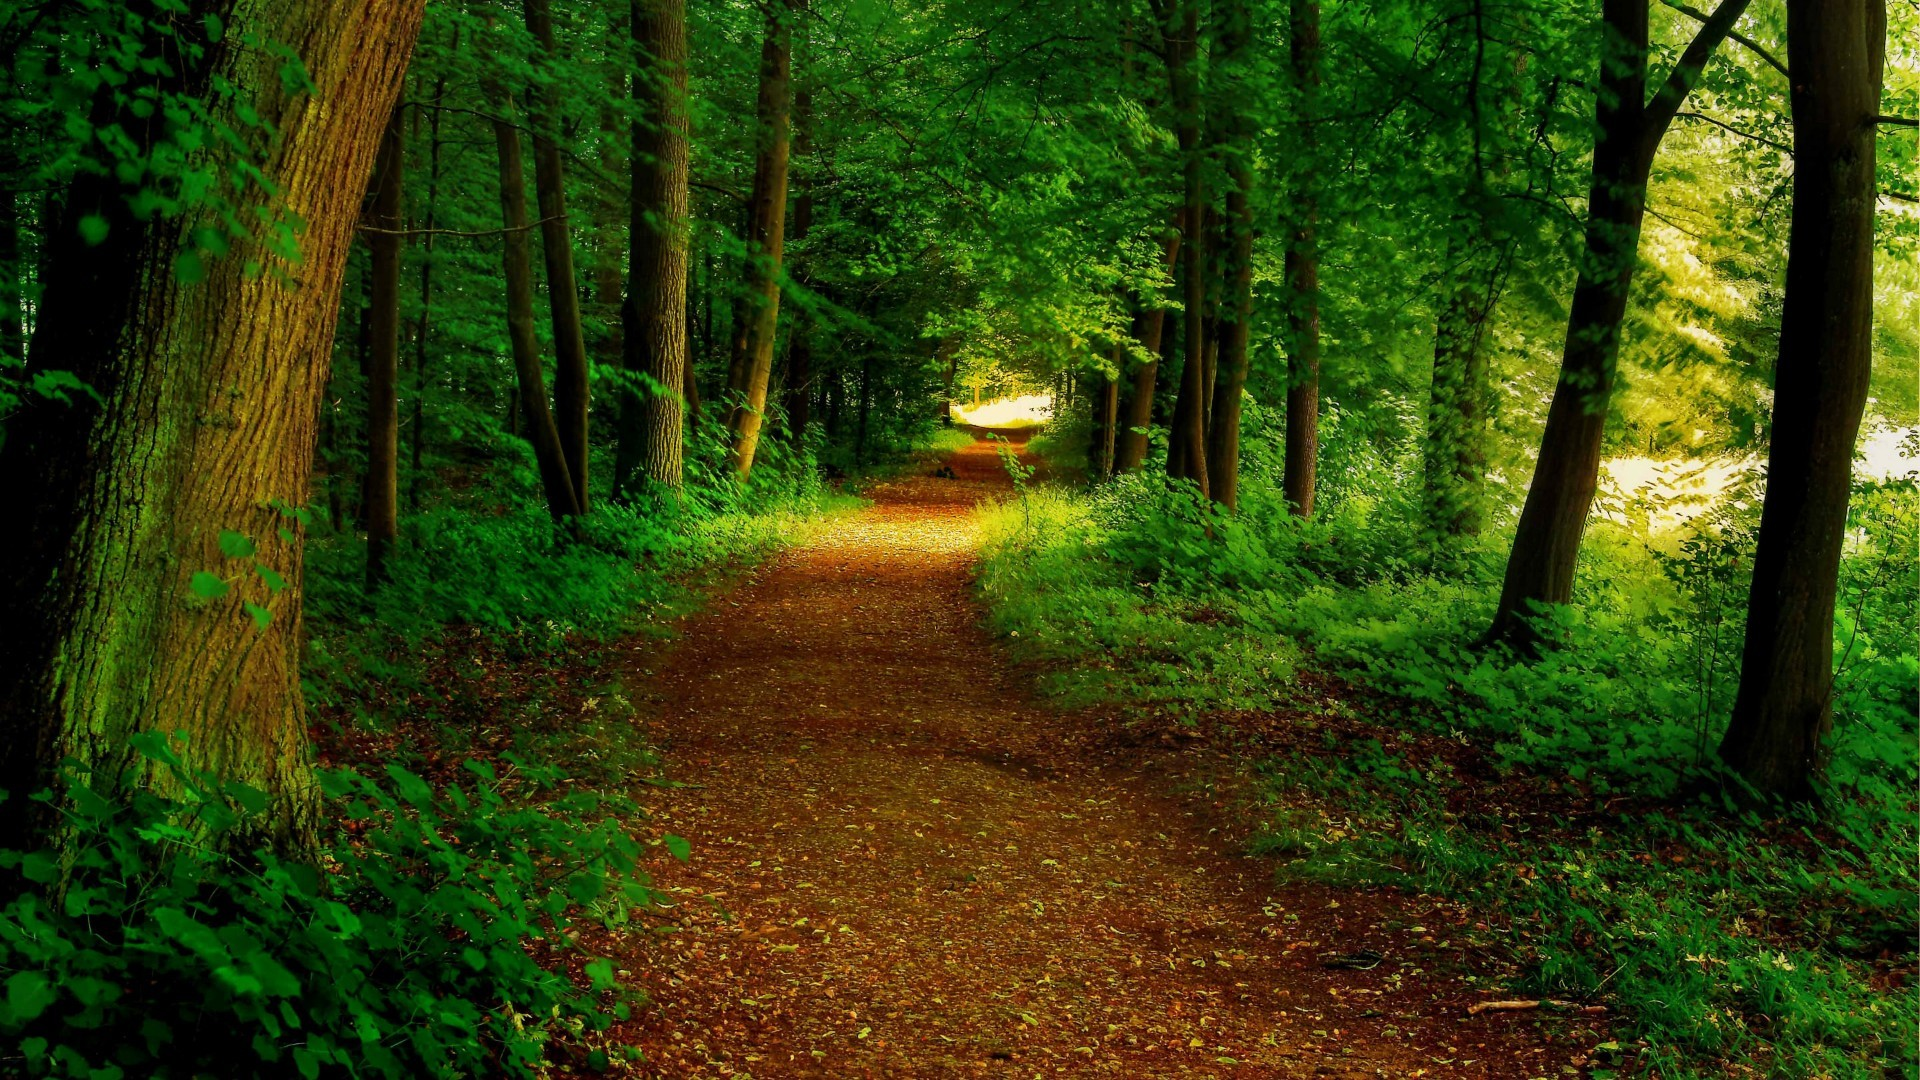 Title. Forest path